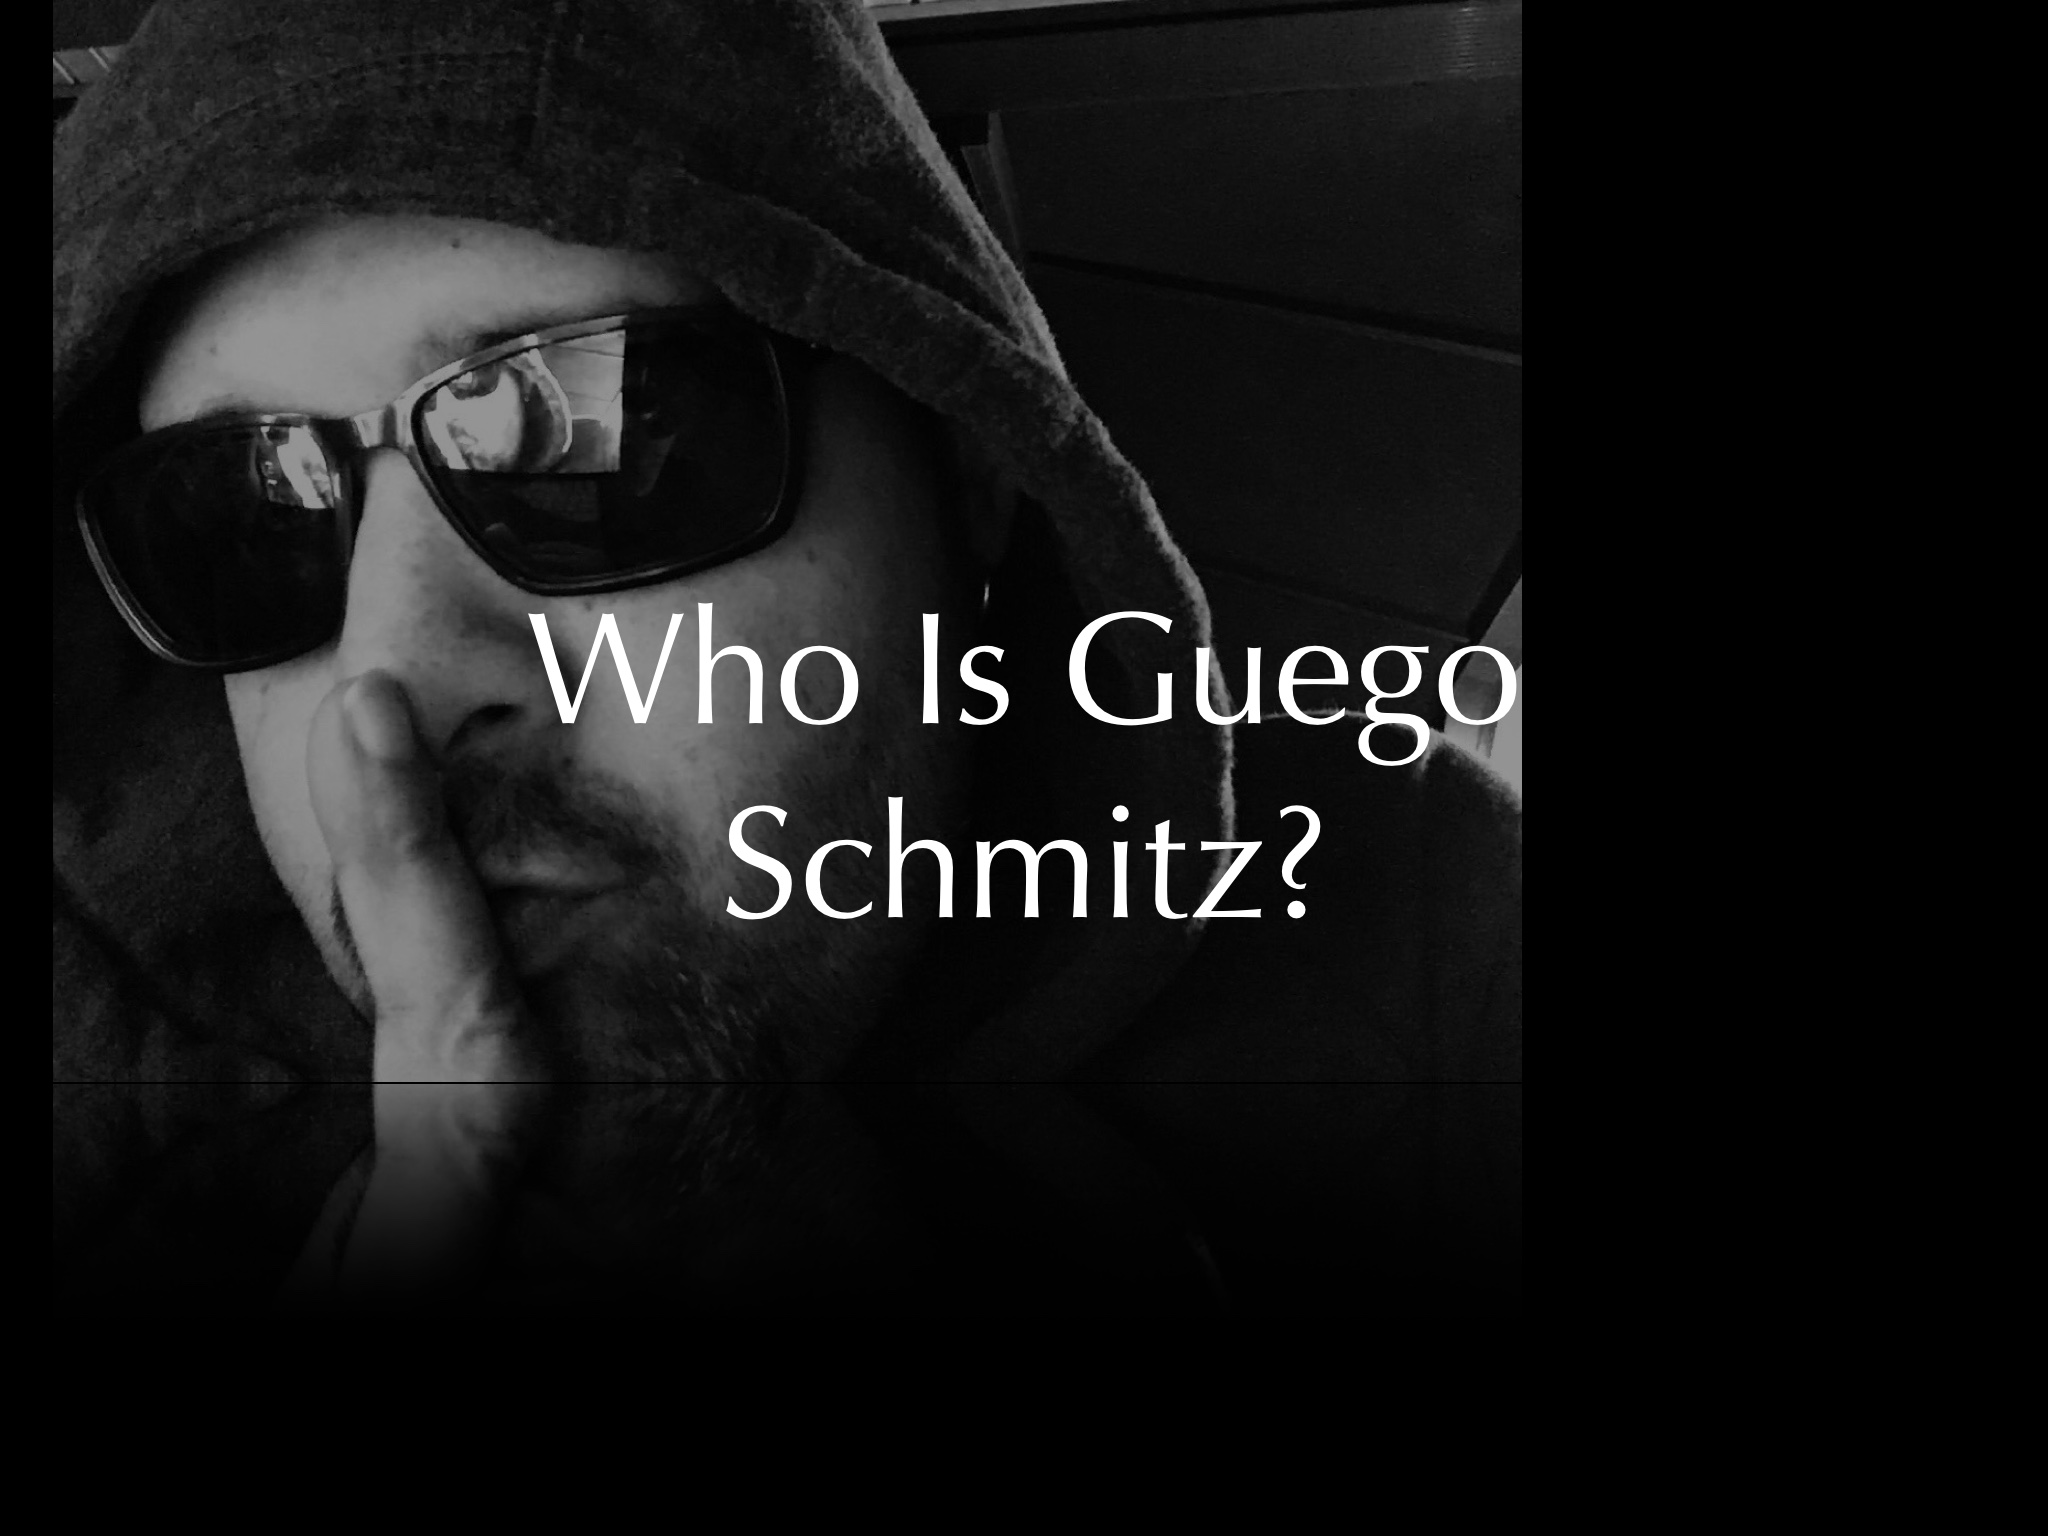 Who Is Guego Schmitz?